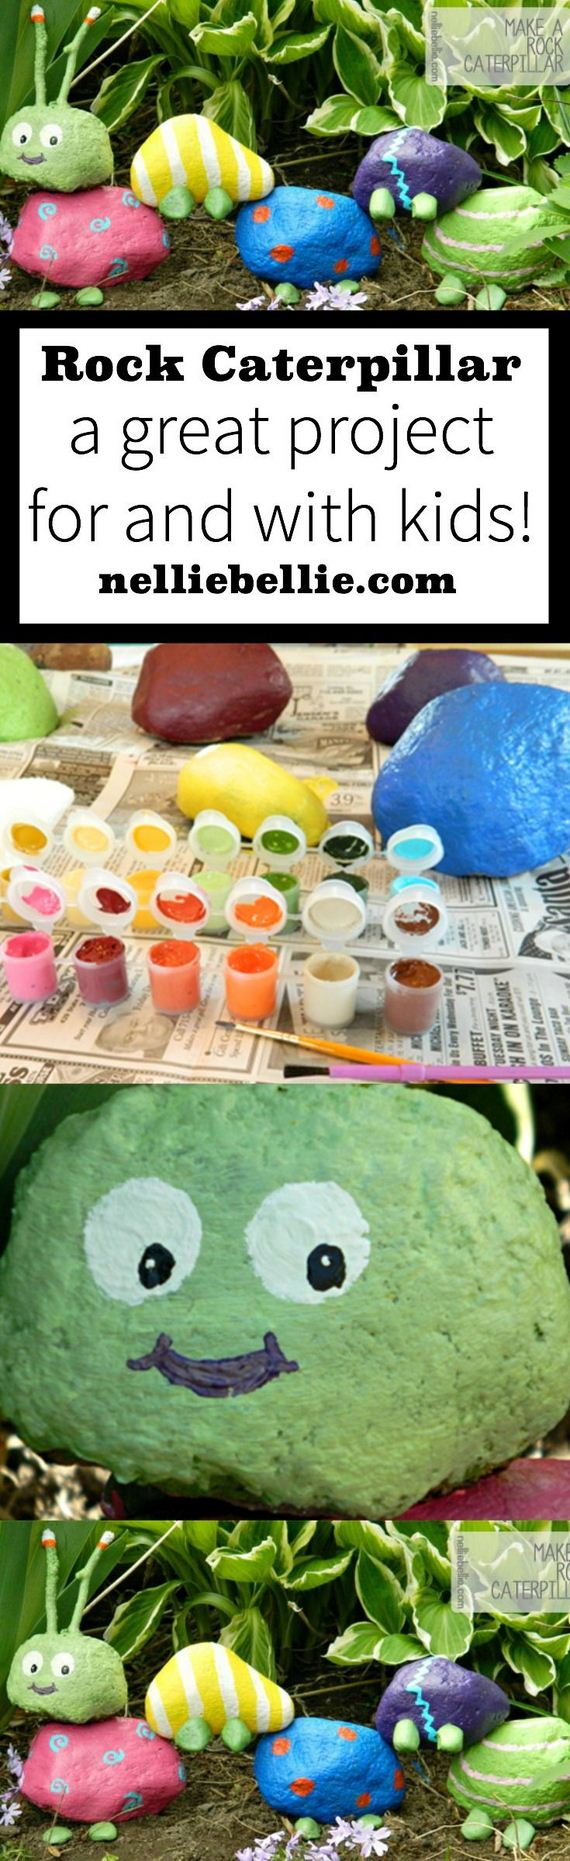 05-diy-stone-painting-and-art